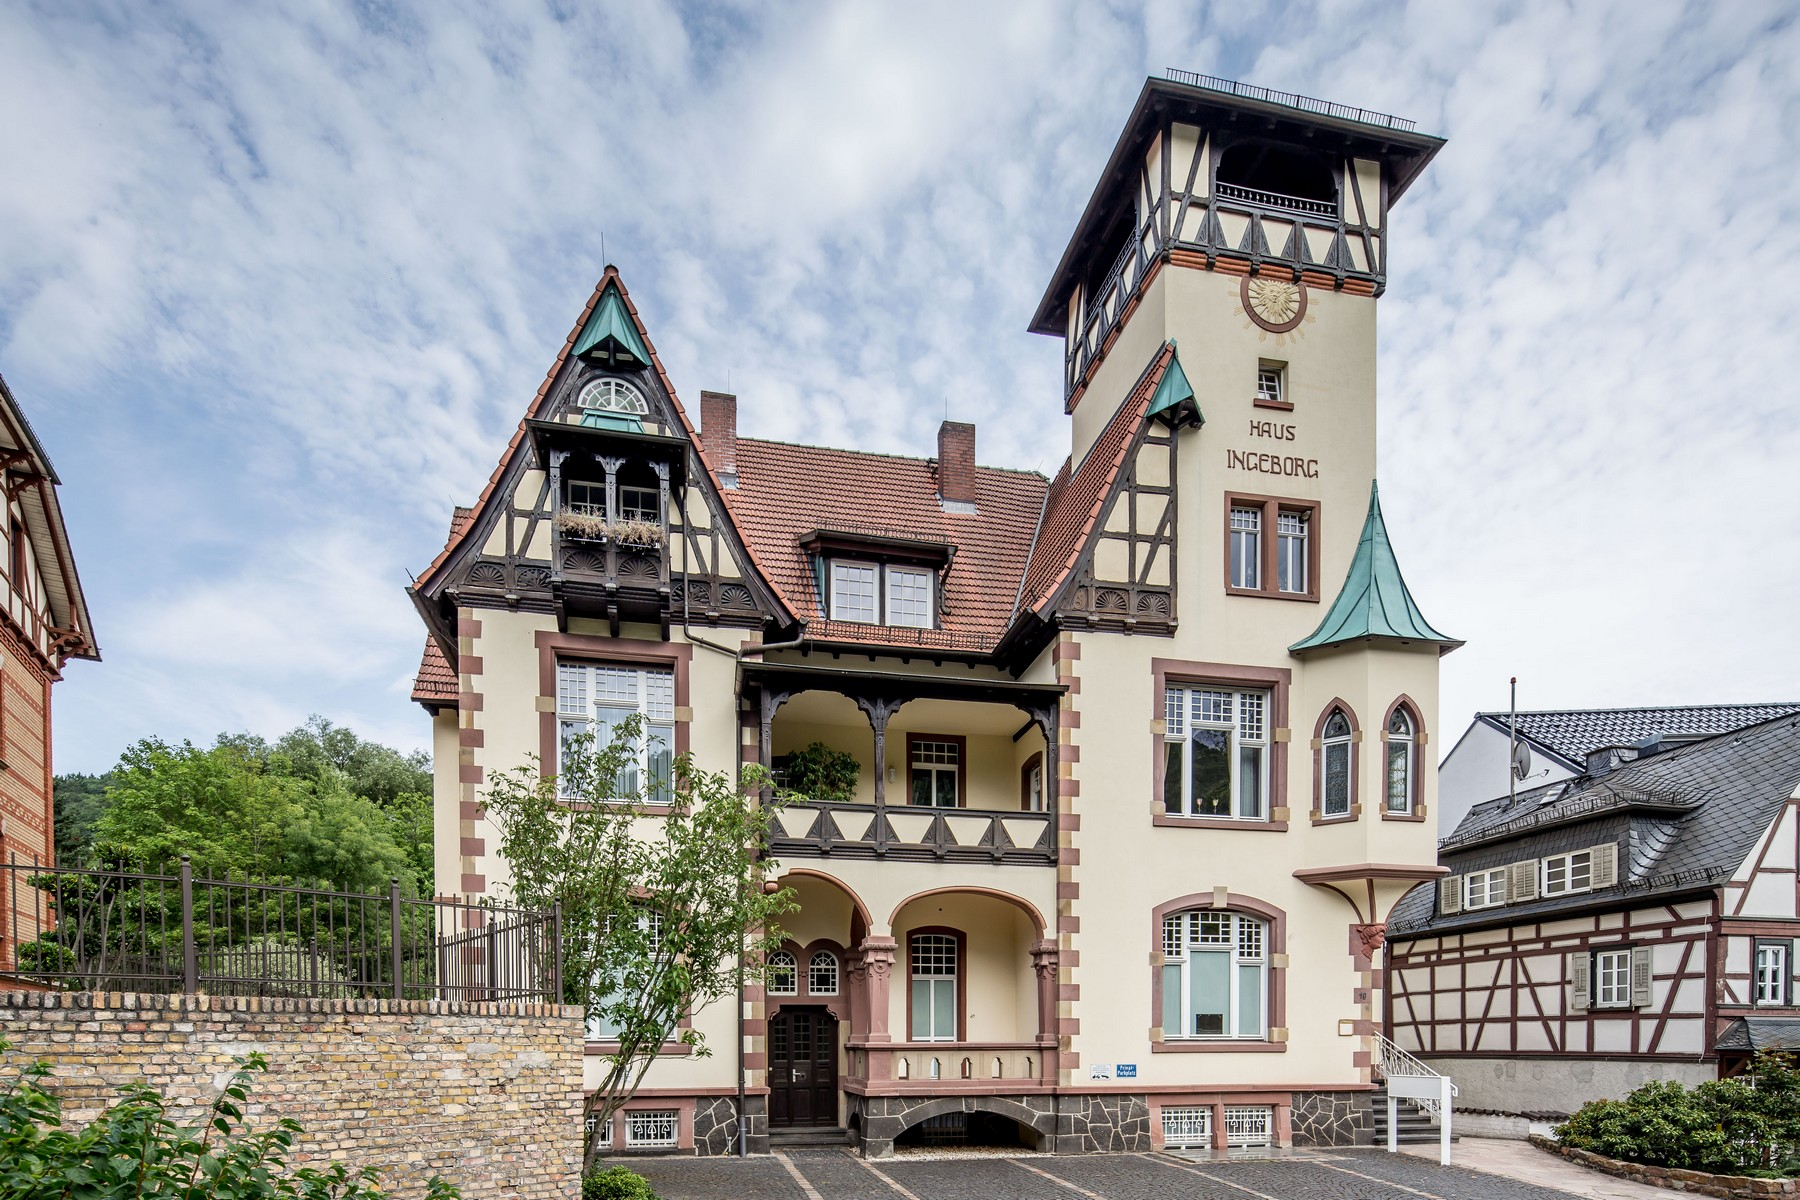 Apartment for Sale at Schlangenbad: Charming Top-floor Apartment in great historic building Other Hessen, Hessen, 65388 Germany